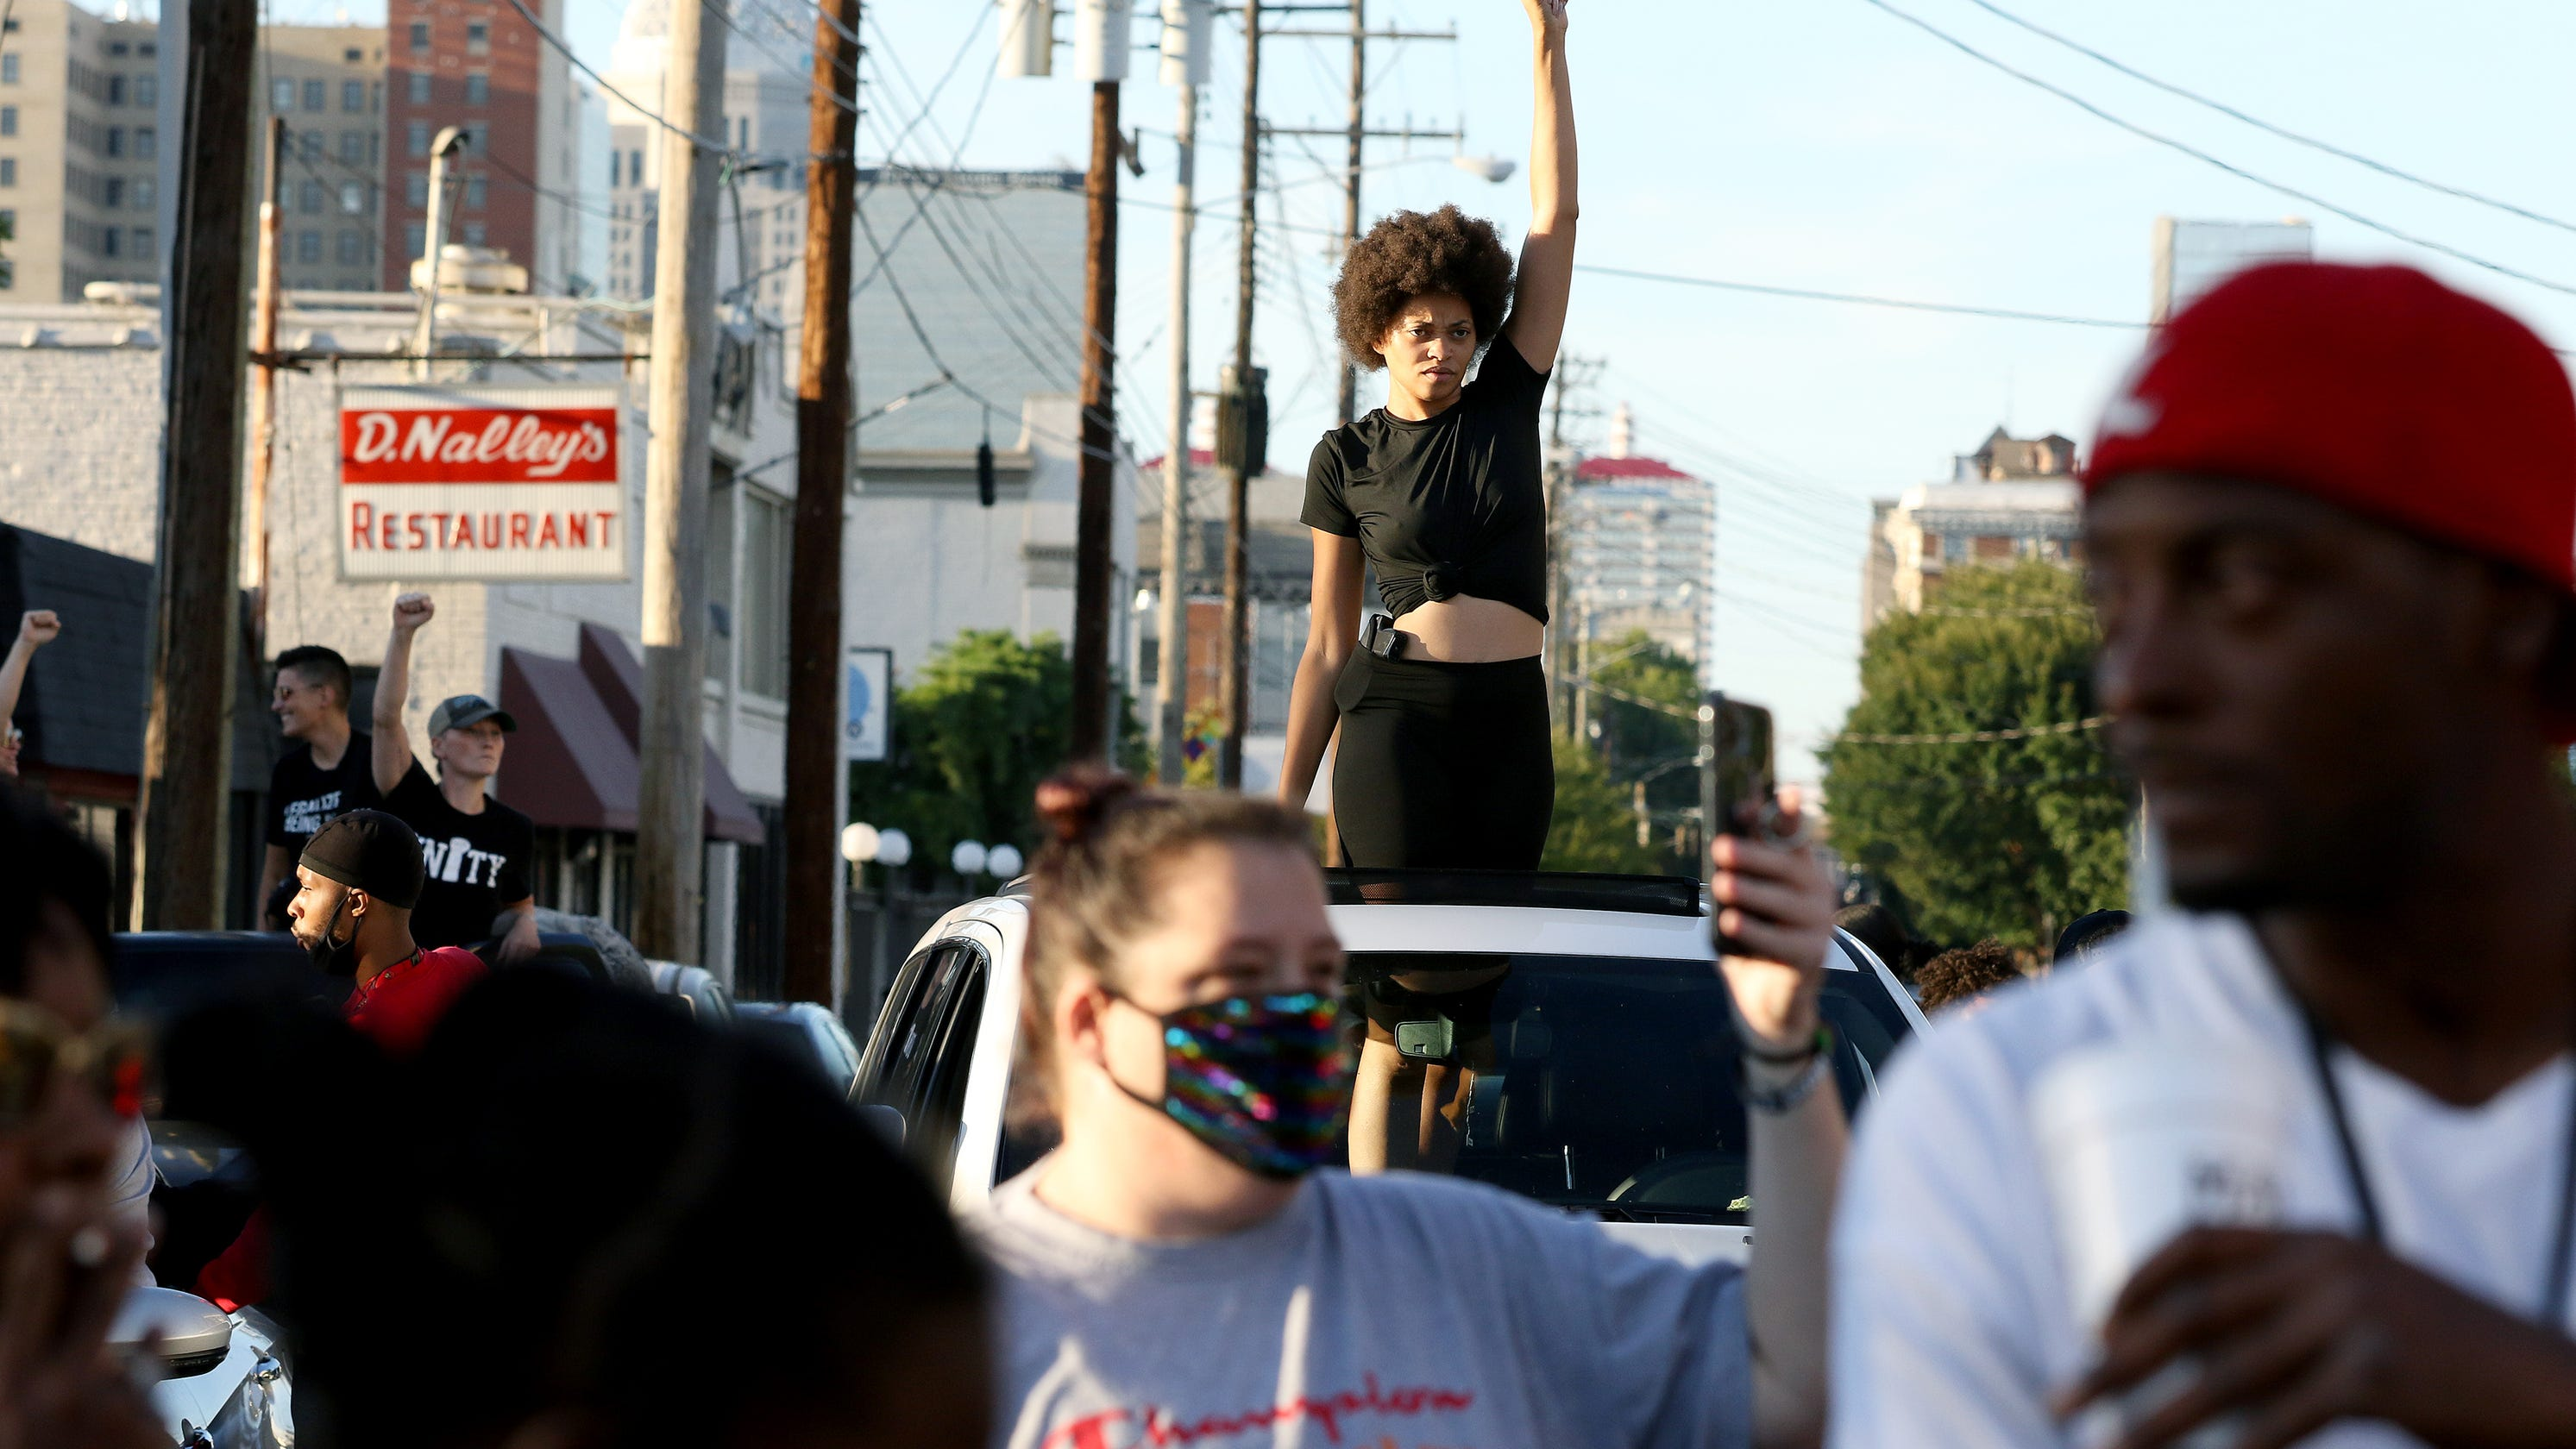 Protests by Breonna Taylor activists, armed march